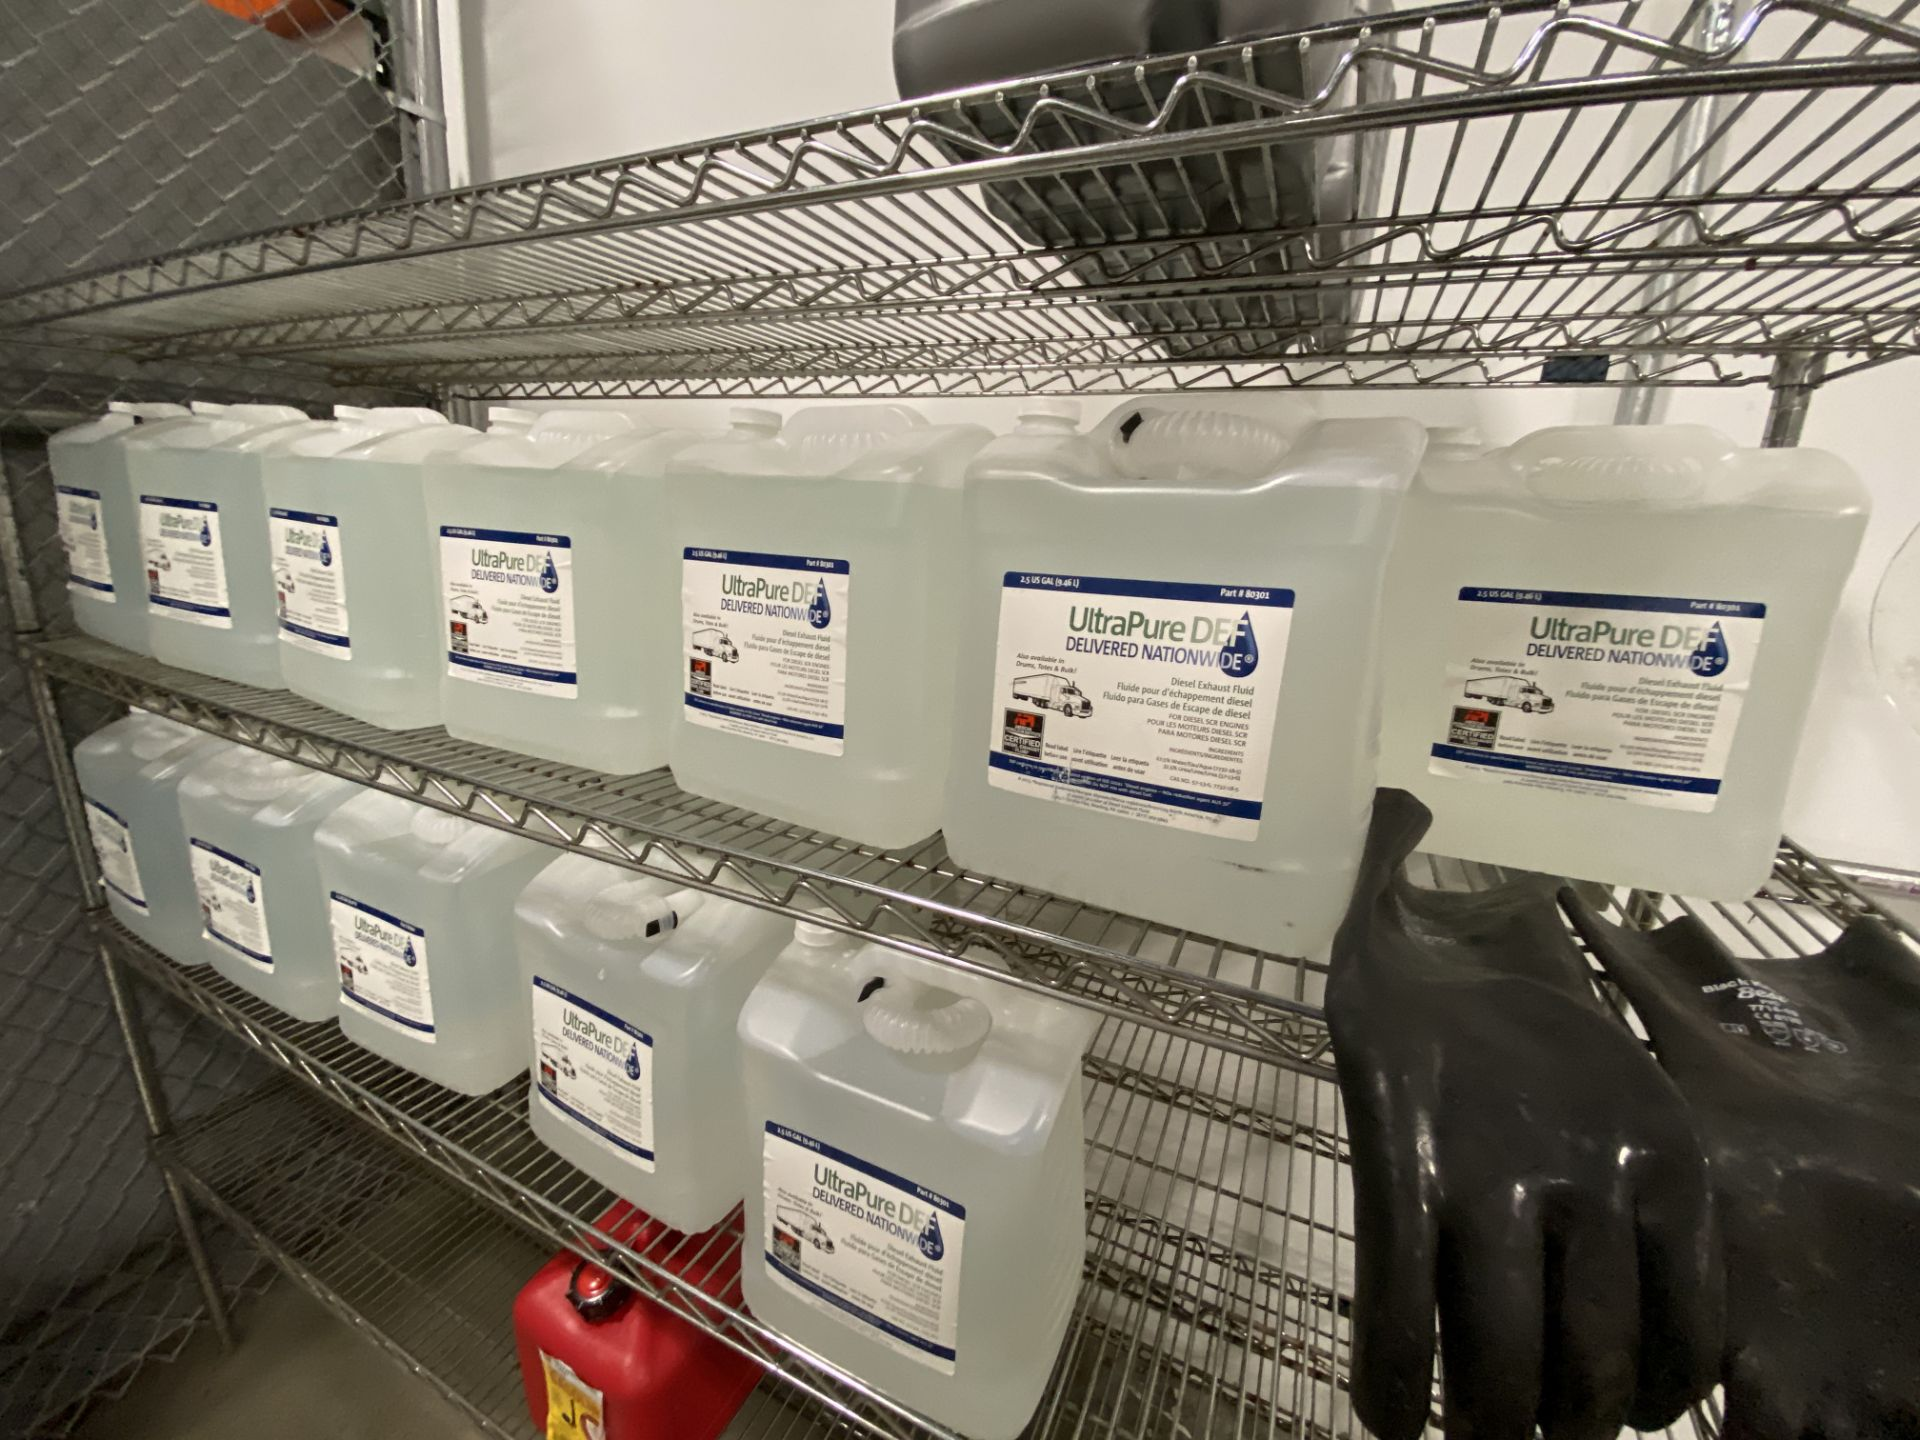 """6' X 24"""" X 4 tier Metro rack with contens including (6) gallons of commercial truck antifreeze, (33) - Image 3 of 5"""